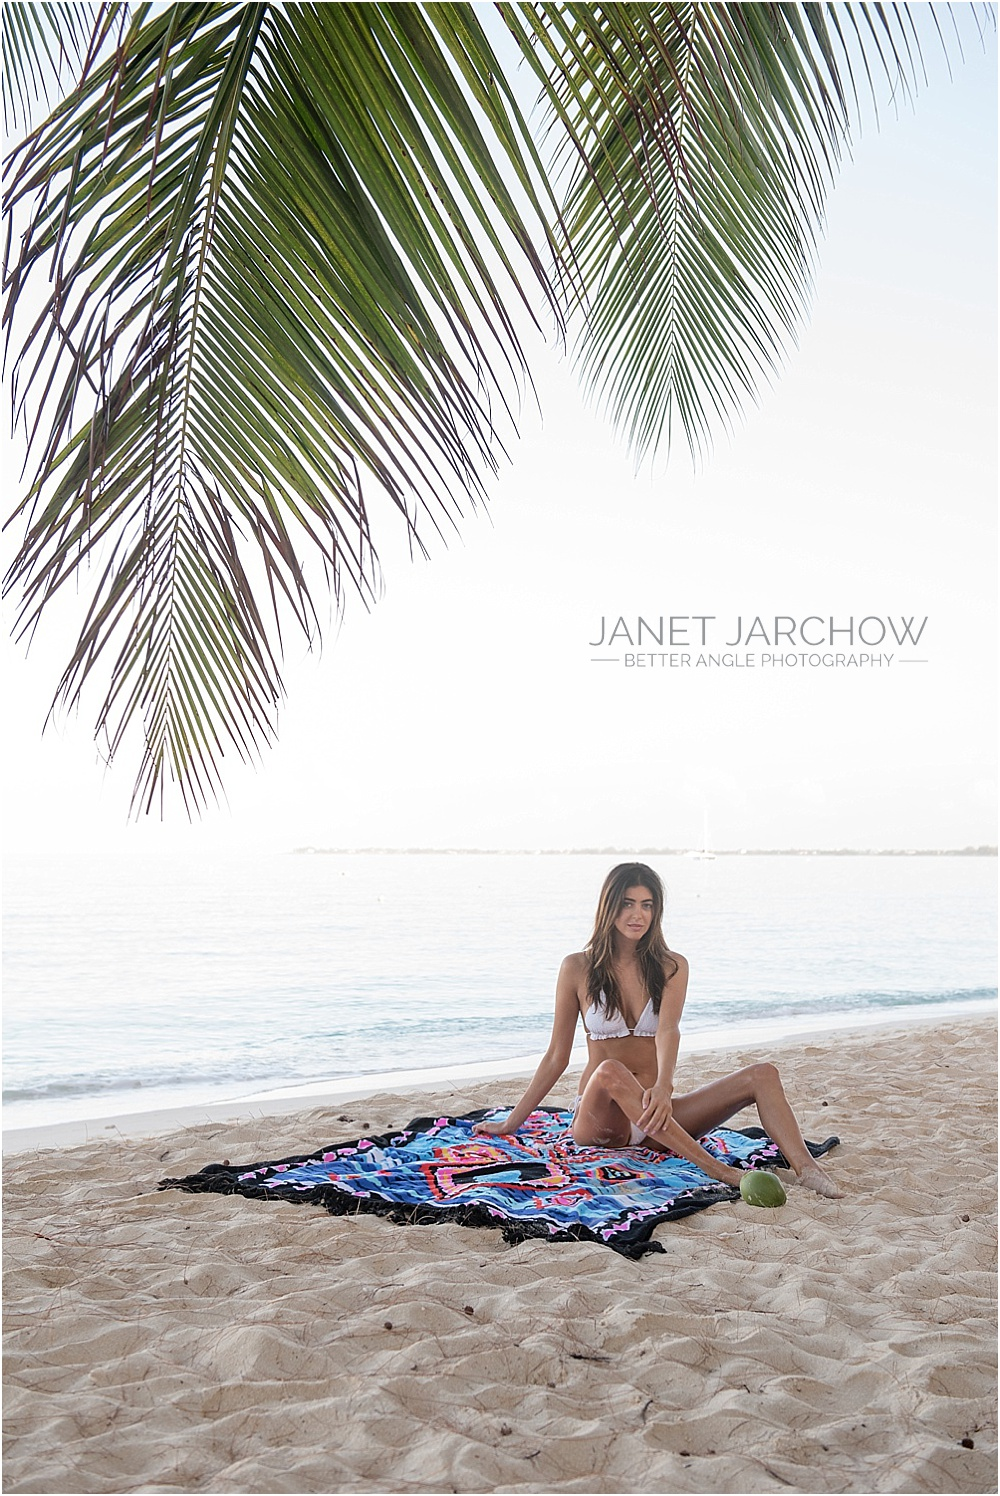 janet-jarchow-better-angle-photography_007